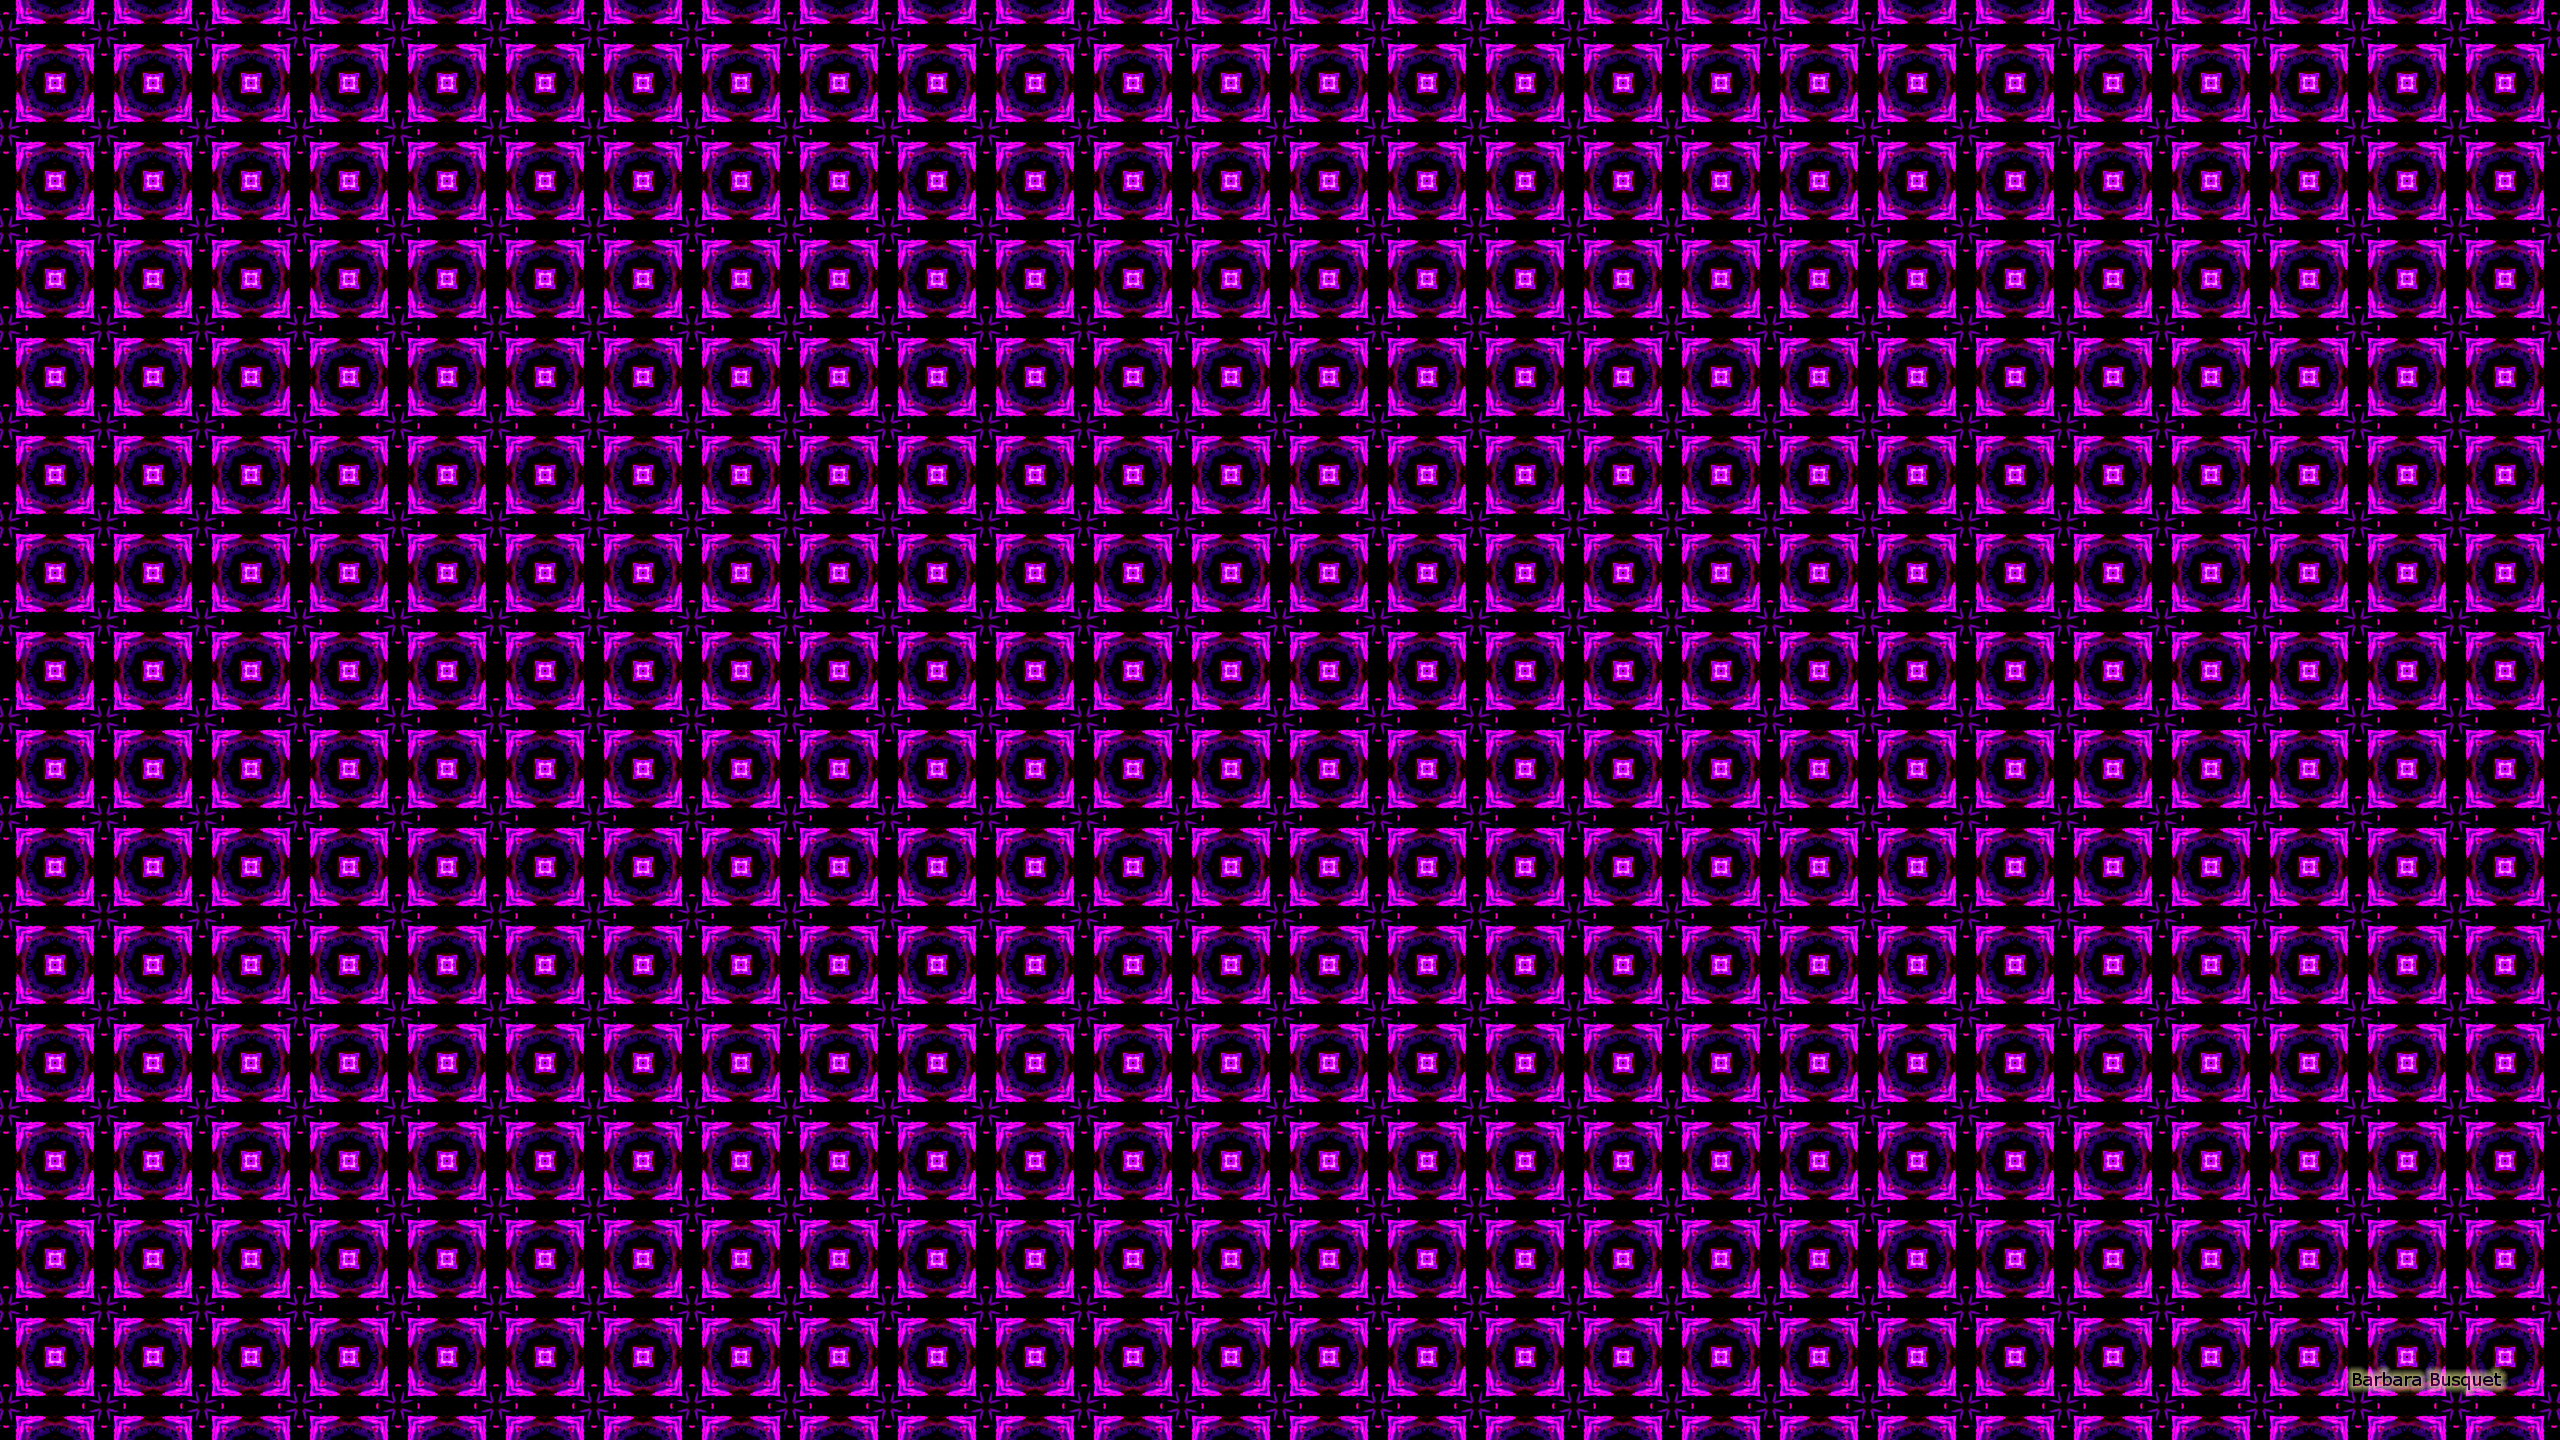 Dark Desktop Background In The Colors Black And Purple